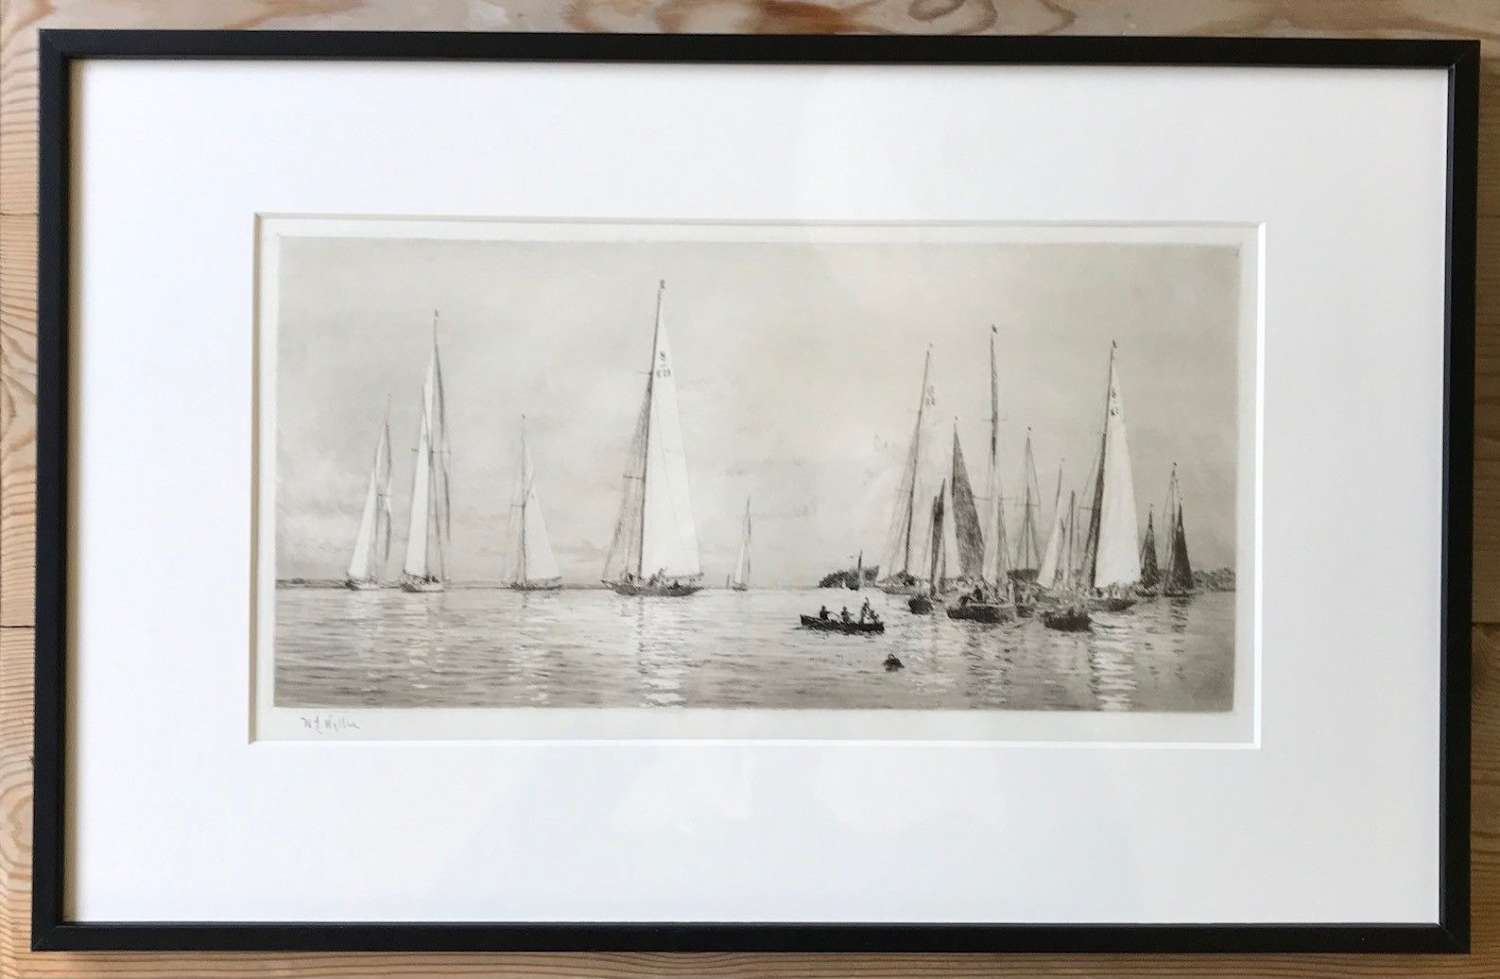 'Sailing off Cowes' etching by William L. Wyllie RA circa 1910